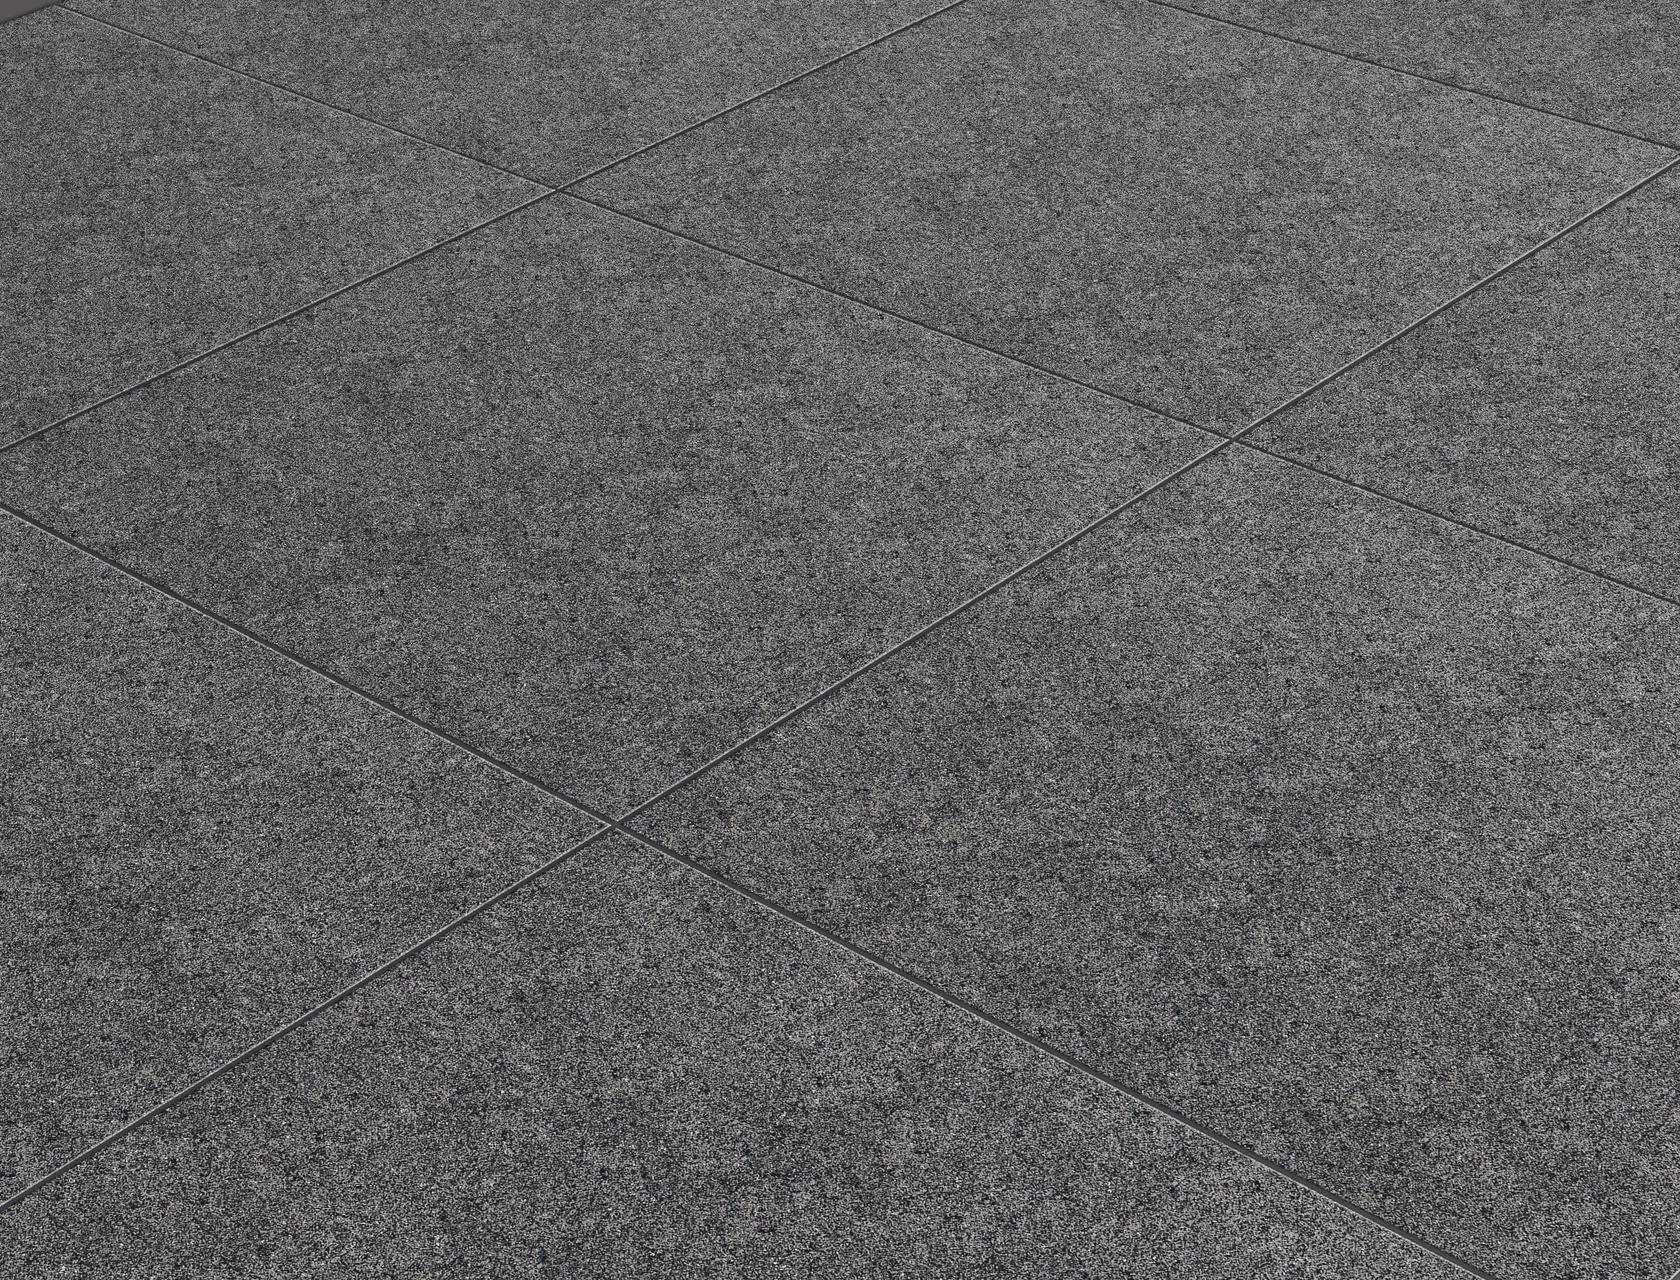 Stone Effect Black Porcelain Tiles Absolute Black